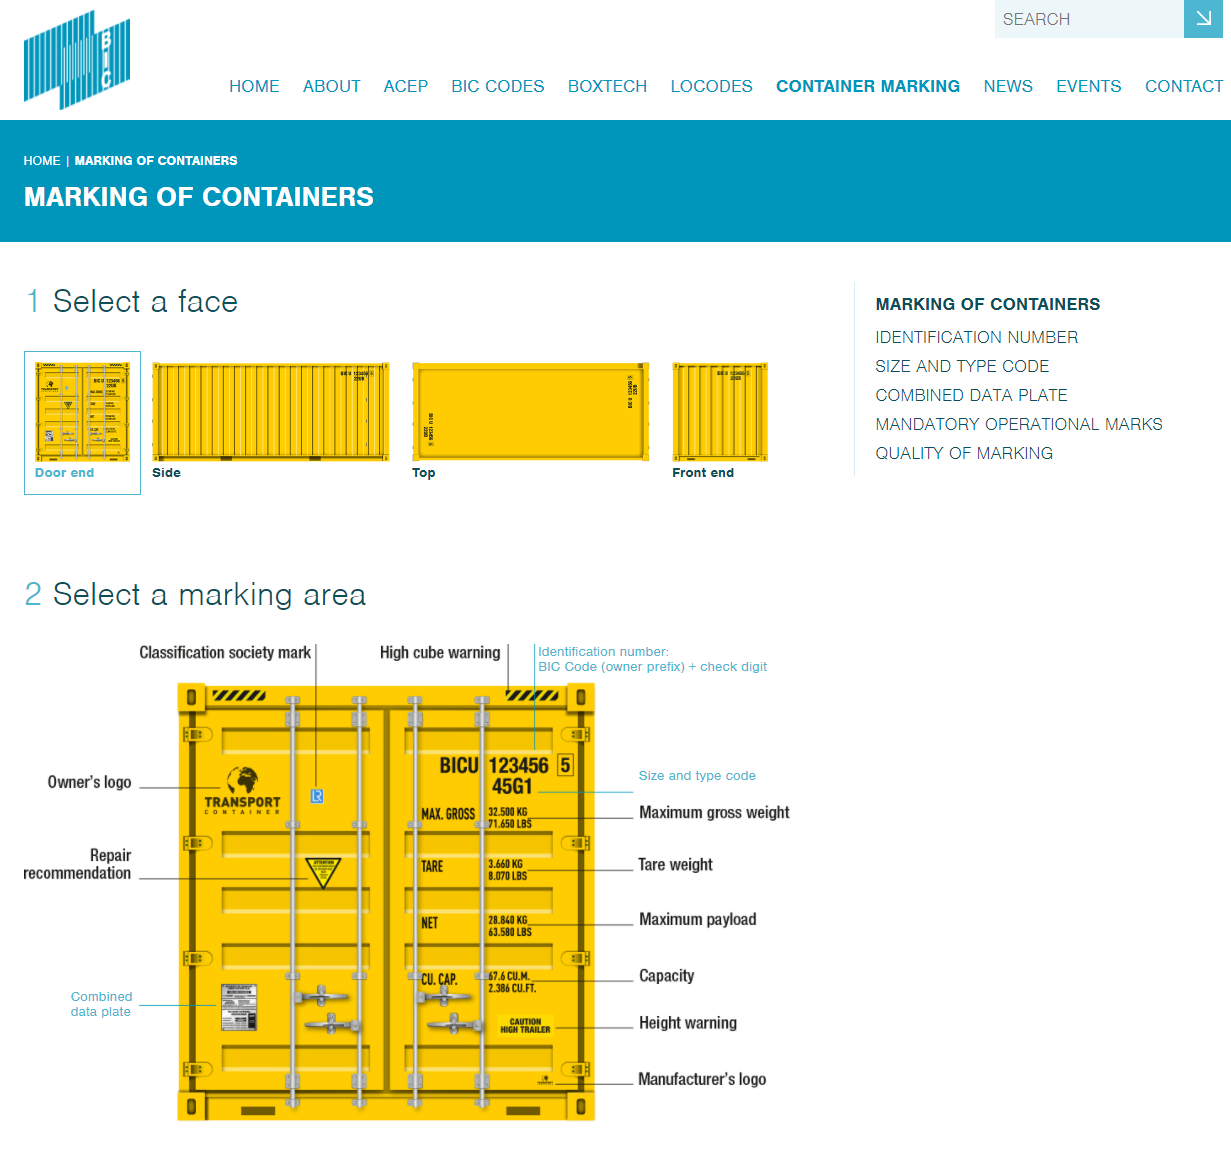 BIC Code Container Markings Section